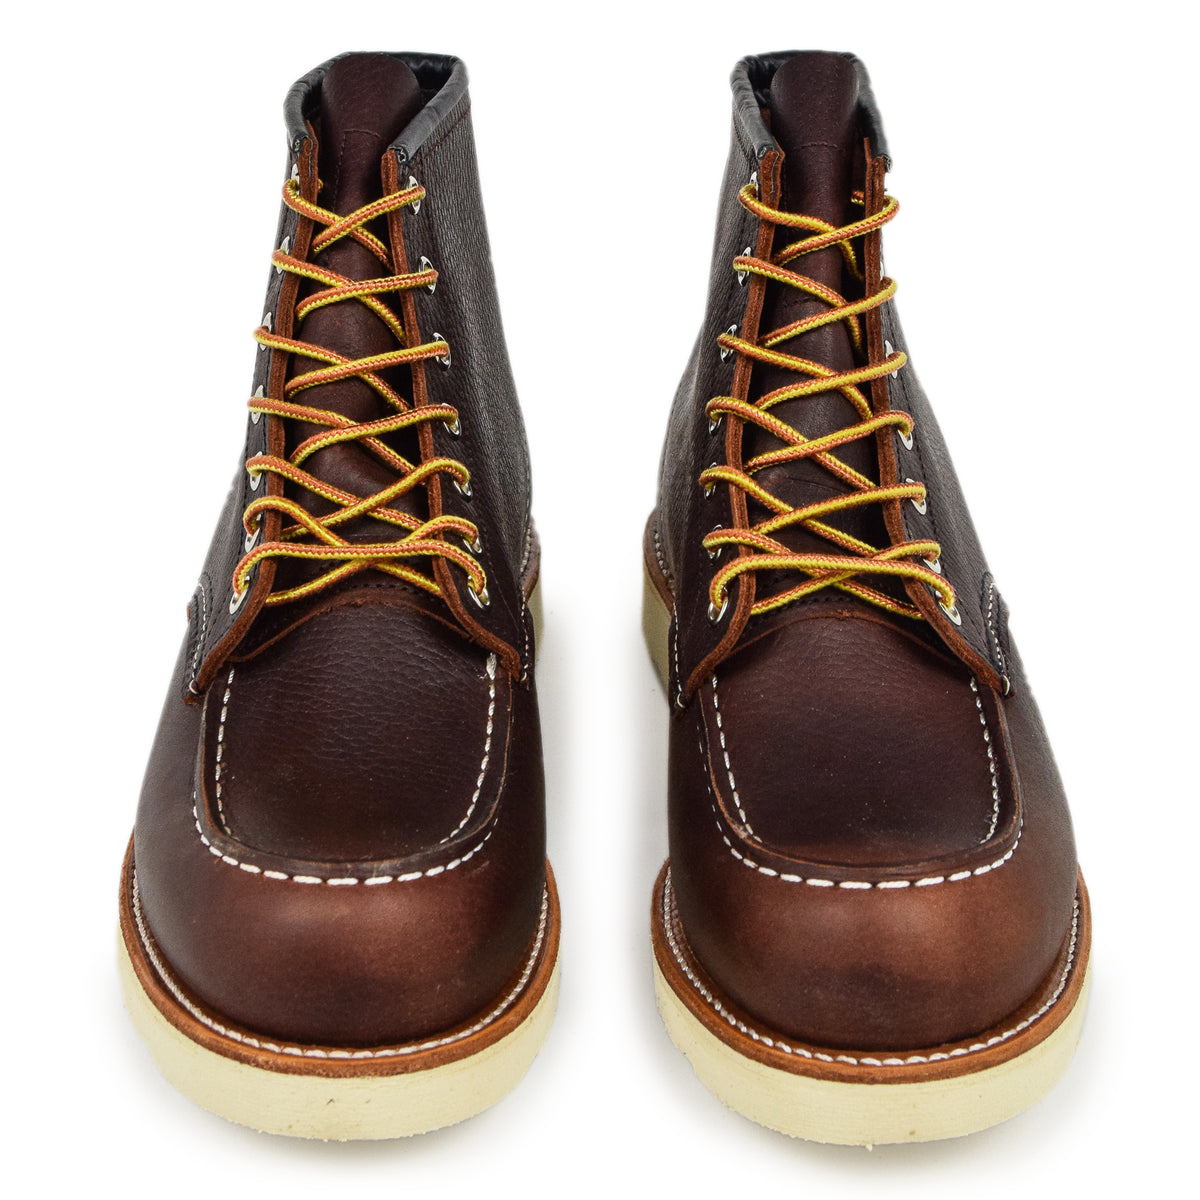 "Red Wing 8138 Classic 6"" Moc Toe Heritage Briar Oil Slick Leather Boot"